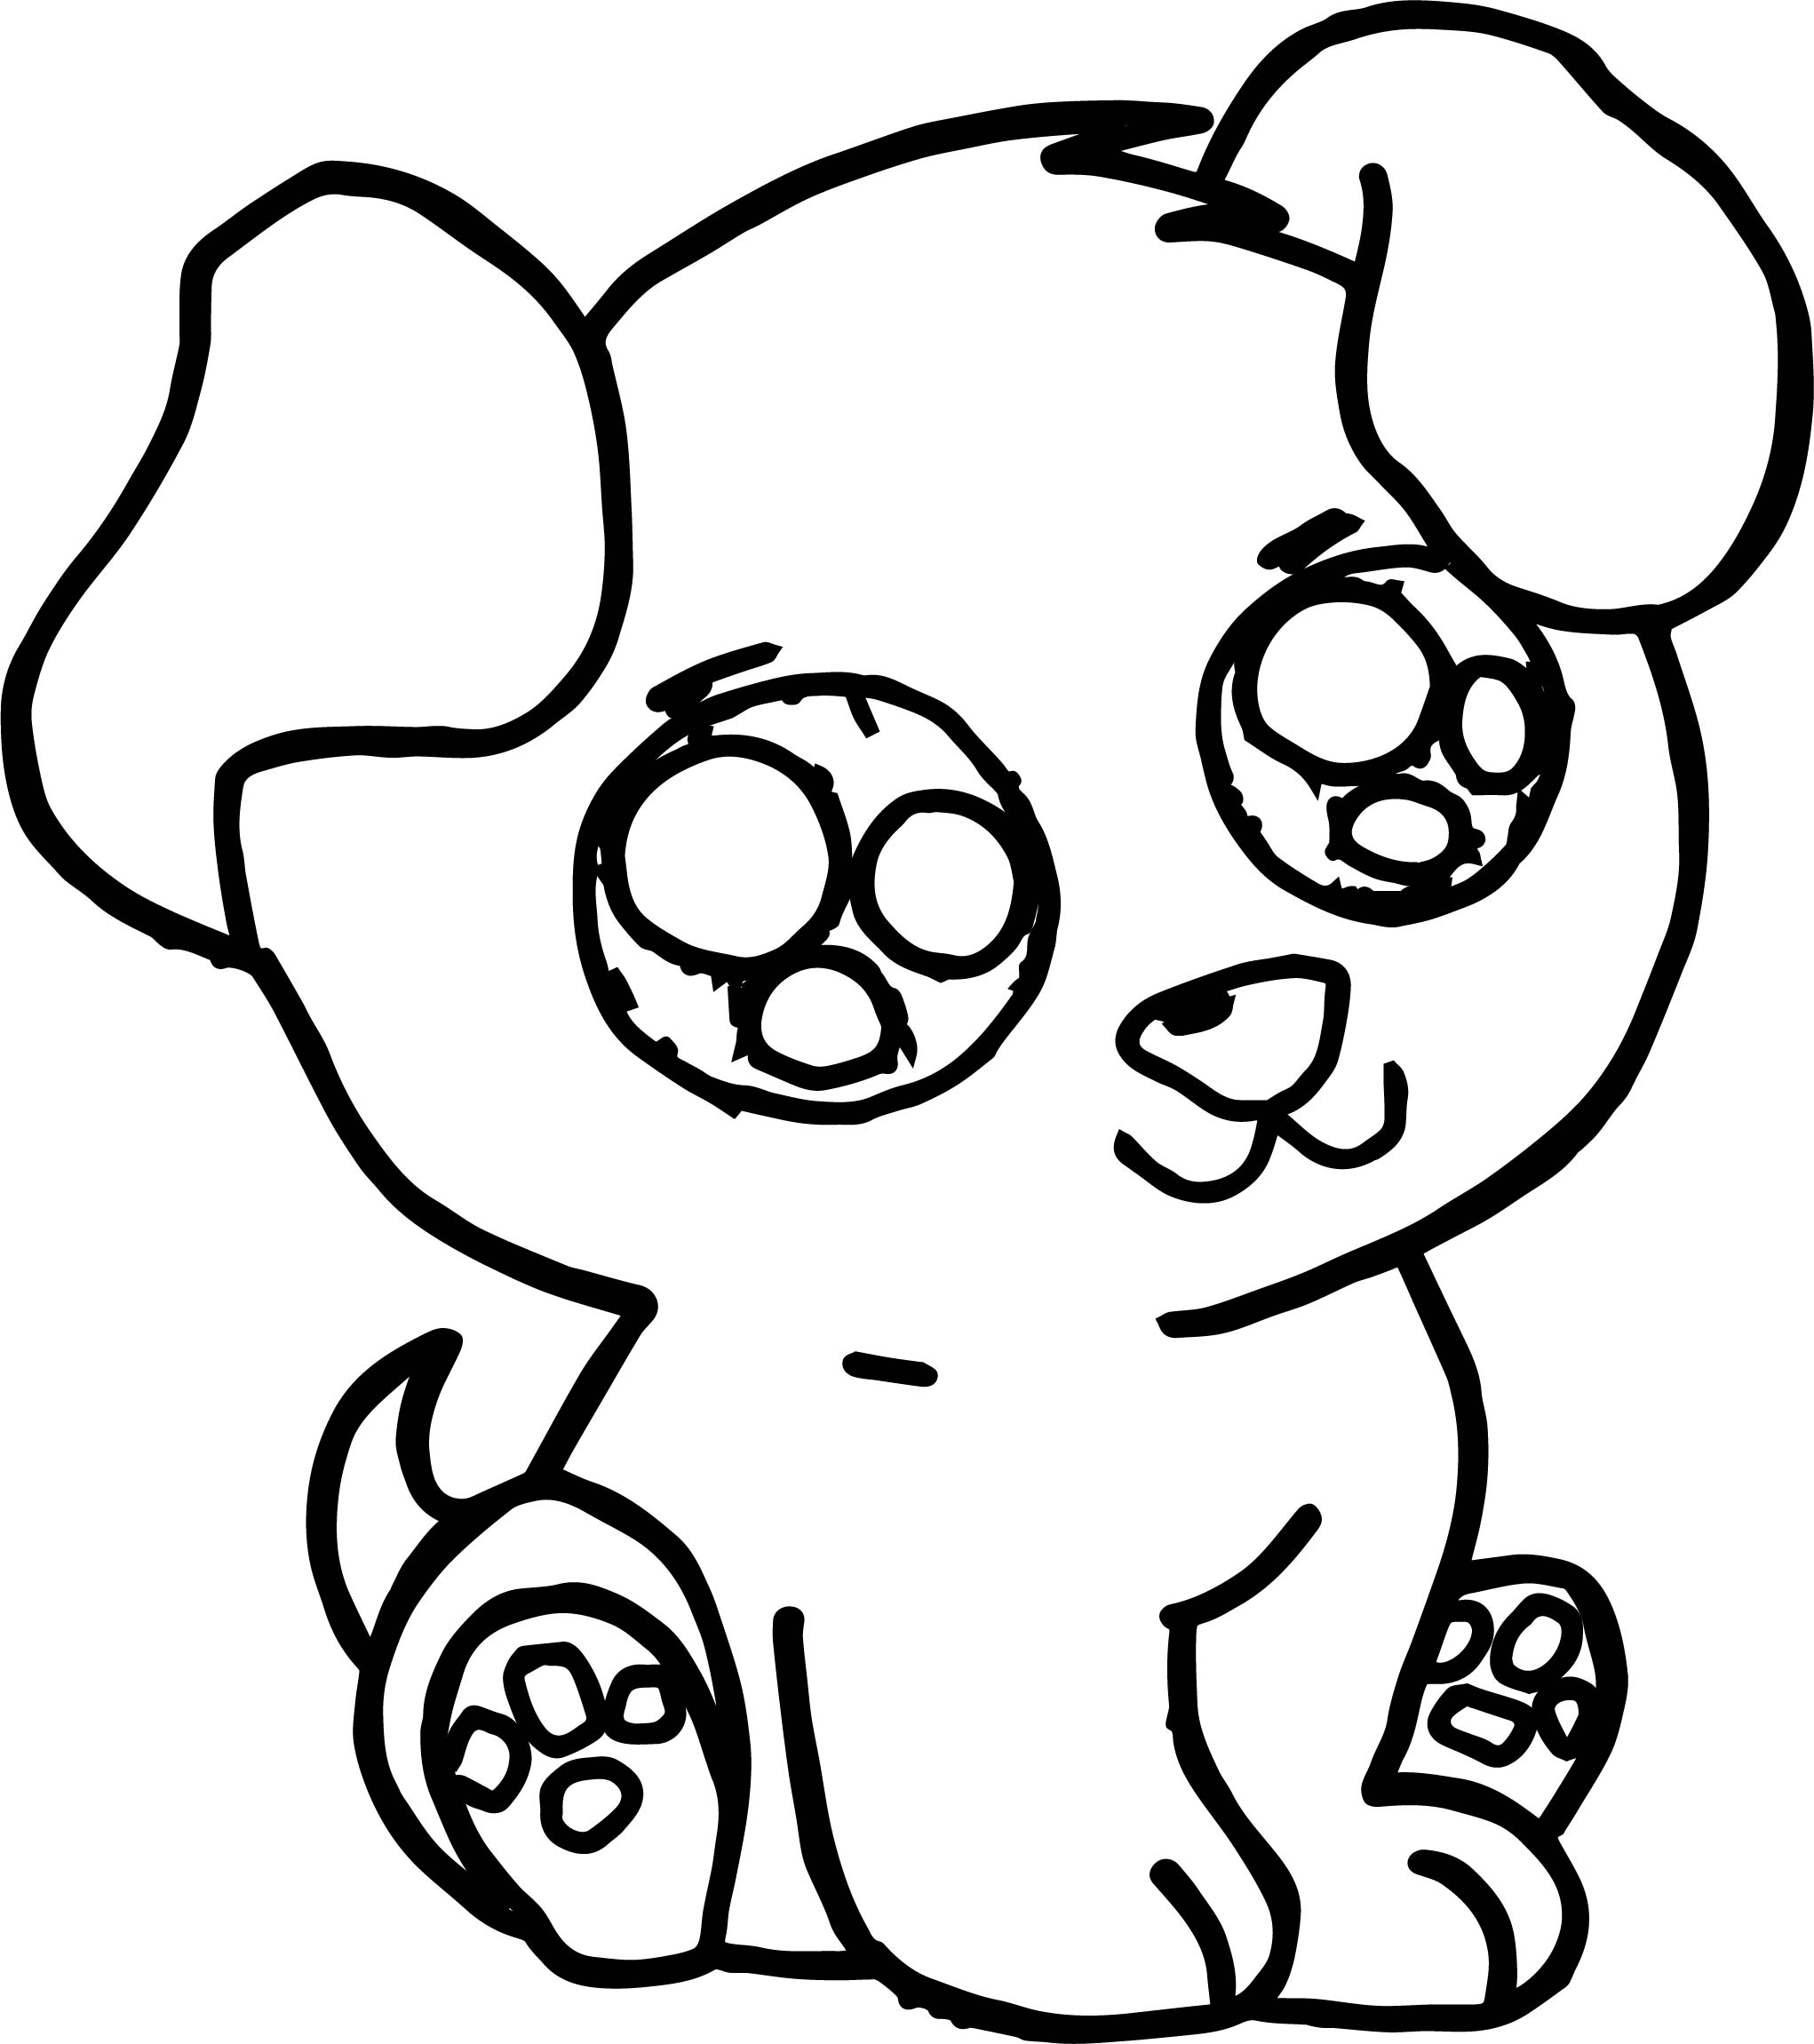 Cute puppy free images puppy dog coloring page for Free coloring pages of dogs